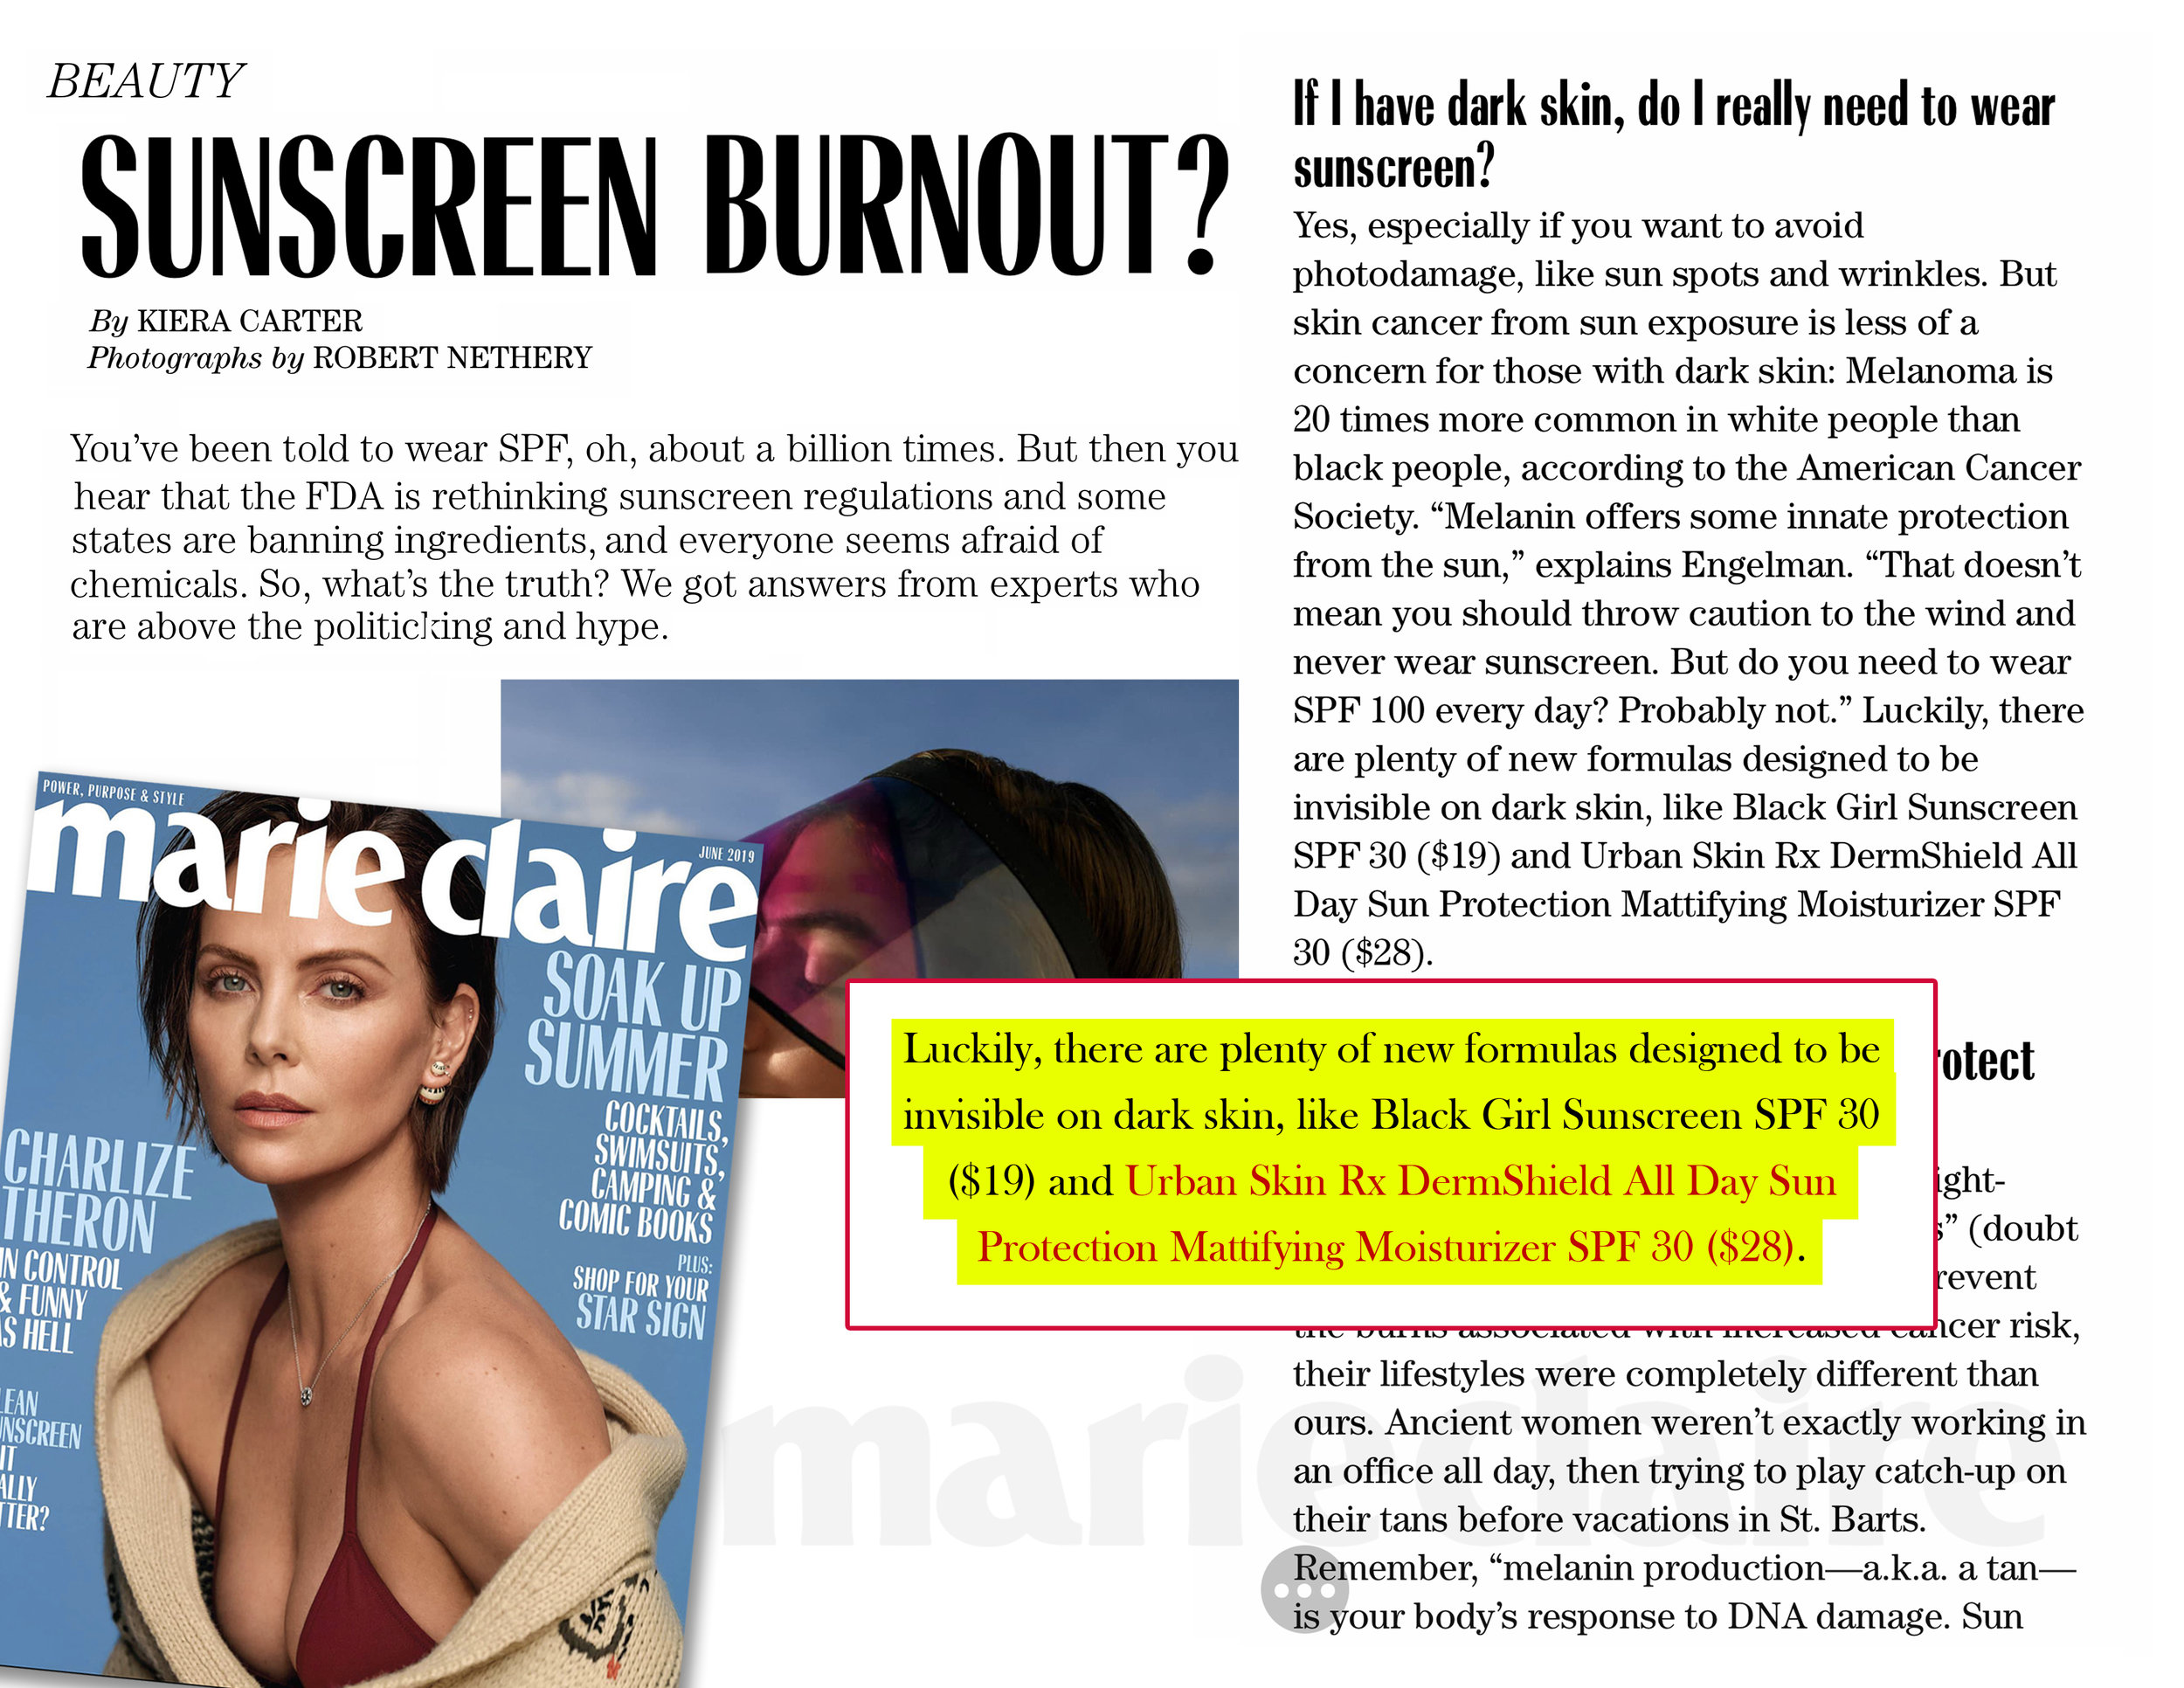 No 27 - Marie Claire.jpg